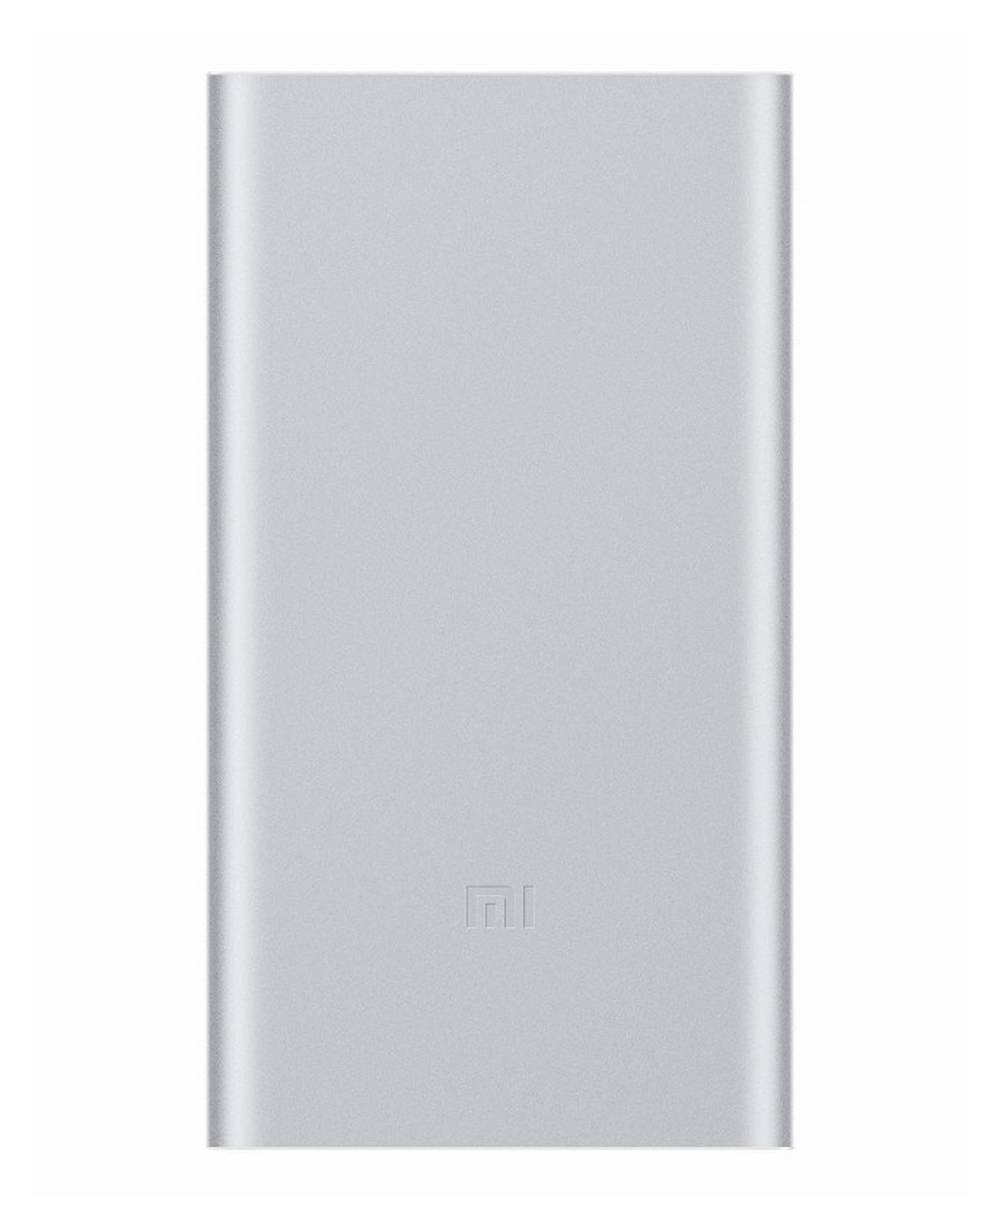 Power Bank Xiaomi PLM02ZM 10000 mAh Ασημί